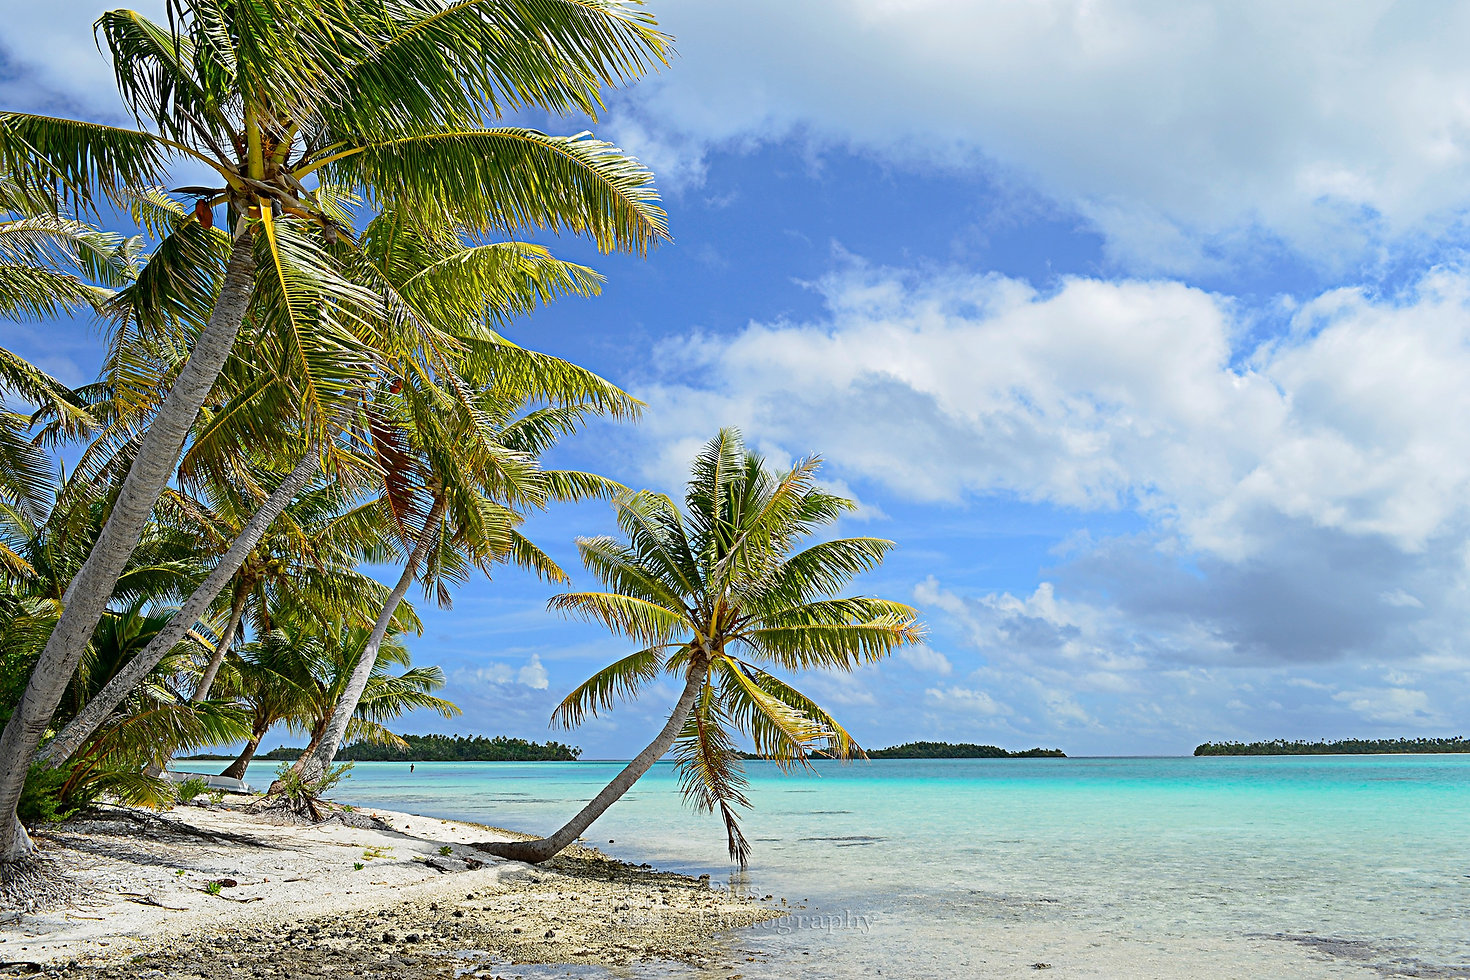 Summer landscape photograph of a hanging palm tree on a tropical white sand beach with a blue sea in the lagoon of the Tahiti archipelago French Polynesia in the Pacific Ocean.